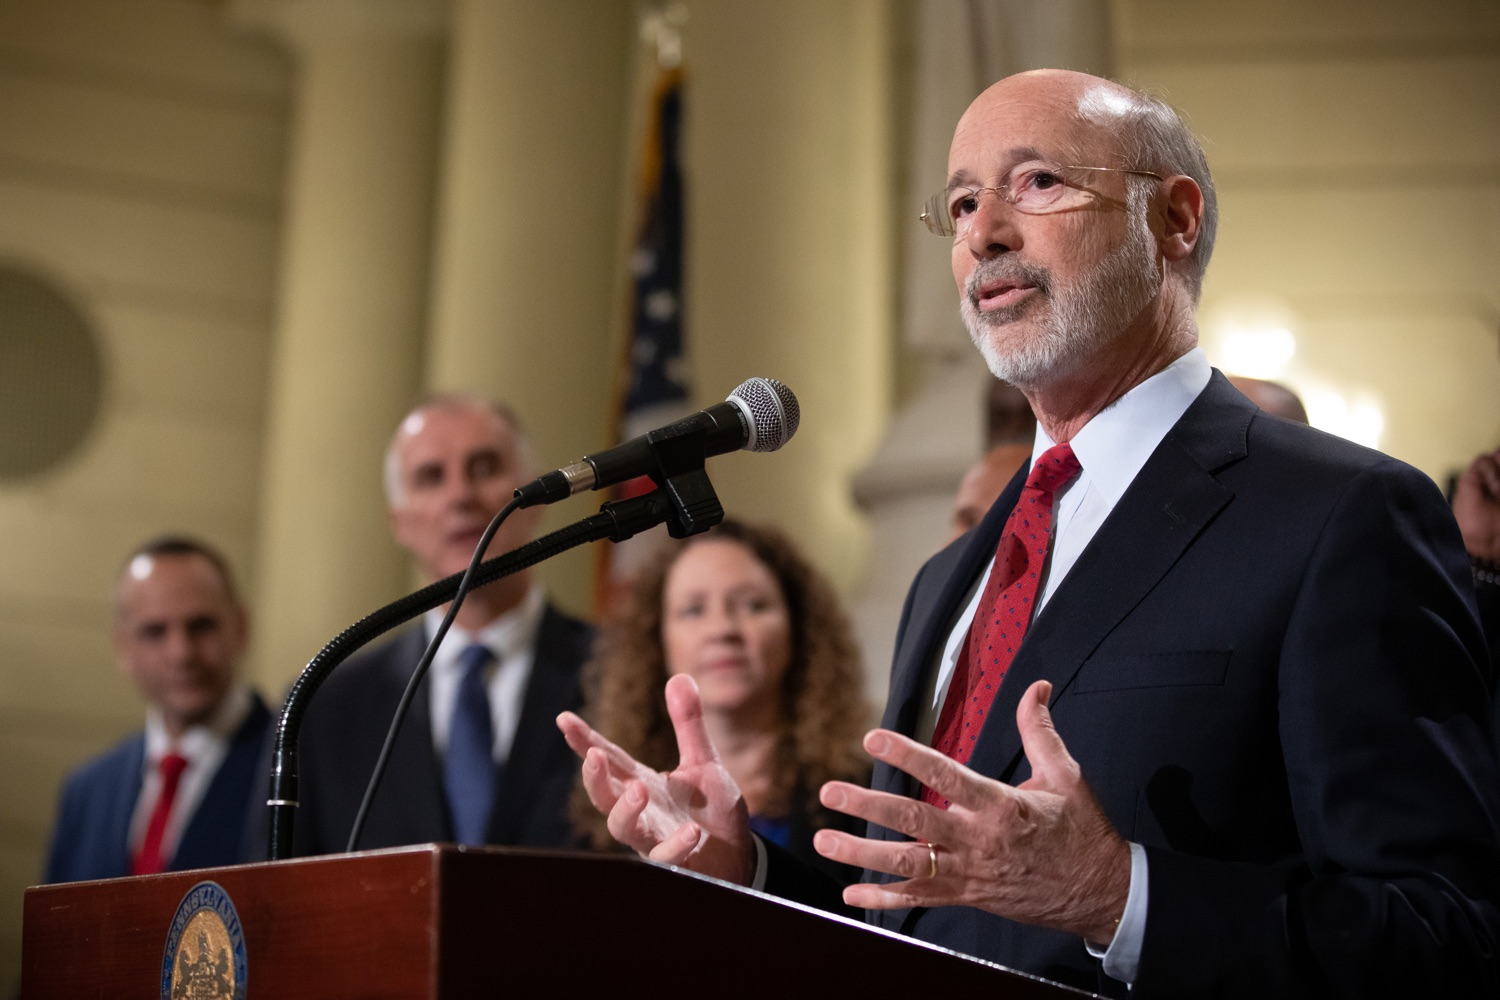 """<a href=""""http://filesource.abacast.com/commonwealthofpa/photo/17601_gov_right_on_crime_dz_001.jpg"""" target=""""_blank"""">⇣Download Photo<br></a>Governor Tom Wolf speaking at the event. Governor Tom Wolf was joined by Deputy Secretary of Corrections Christian Stephens and national criminal justice reform advocates today in the Capitol Rotunda to push for commonsense probation reforms that address probation sentences and probation lengths.  Harrisburg, PA  November 18, 2019"""